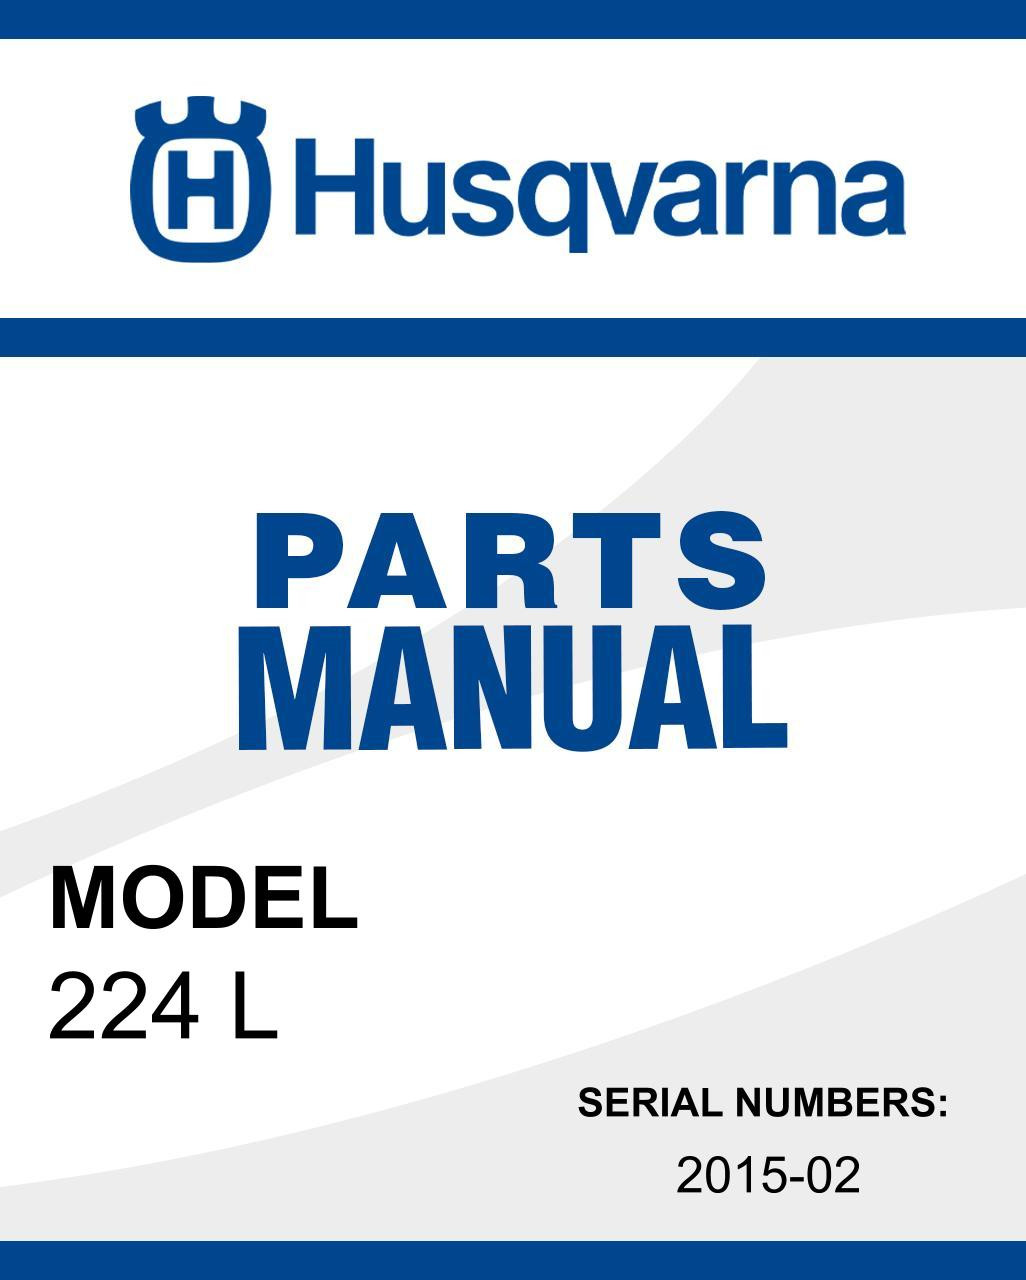 Husqvarna-TRIMMERS/EDGERS-owners-manual.jpg